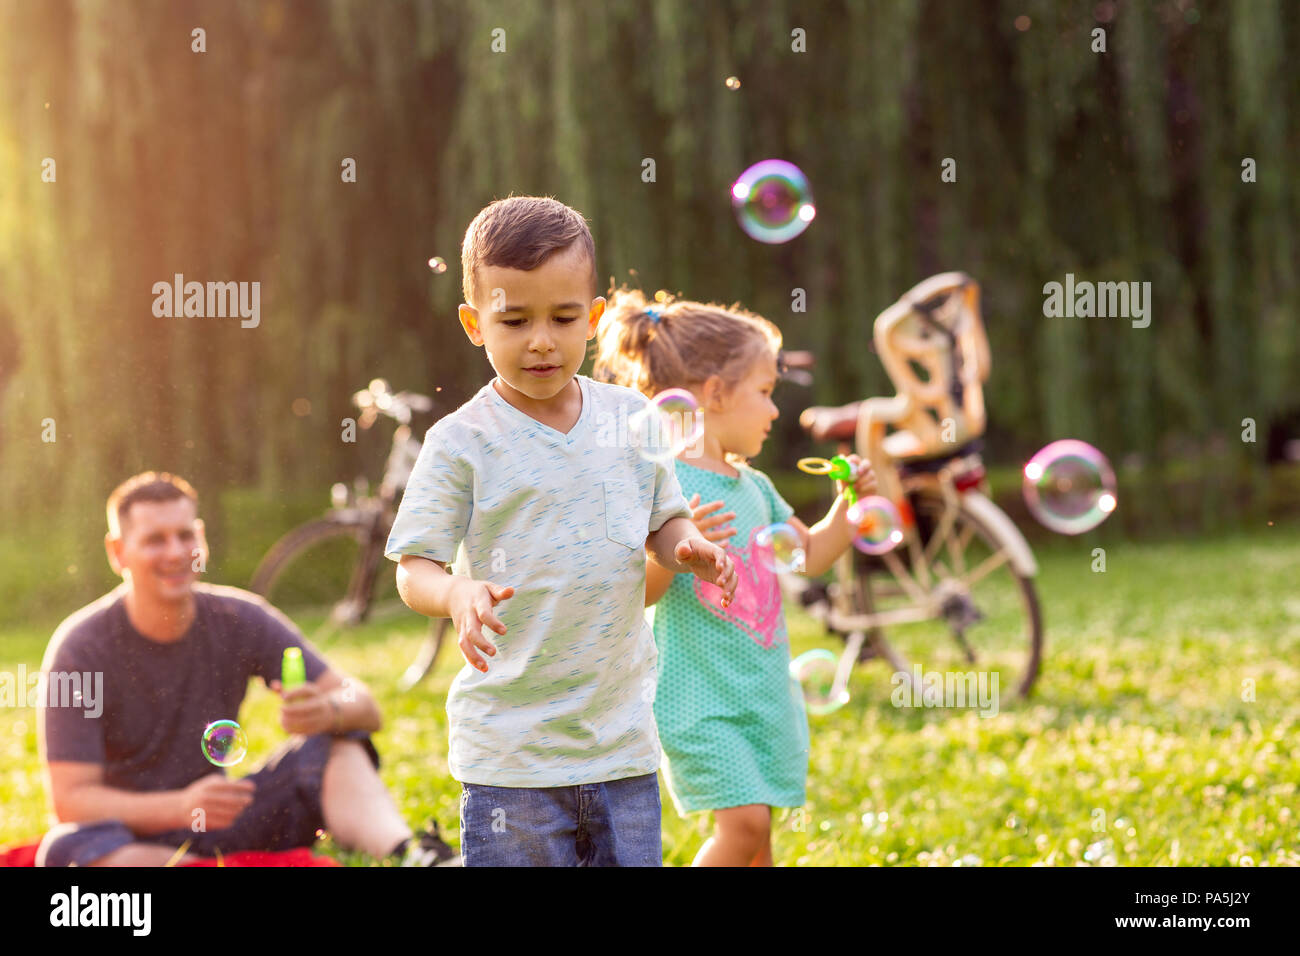 family time- Cheerful cute children chase bubbles in nature - Stock Image